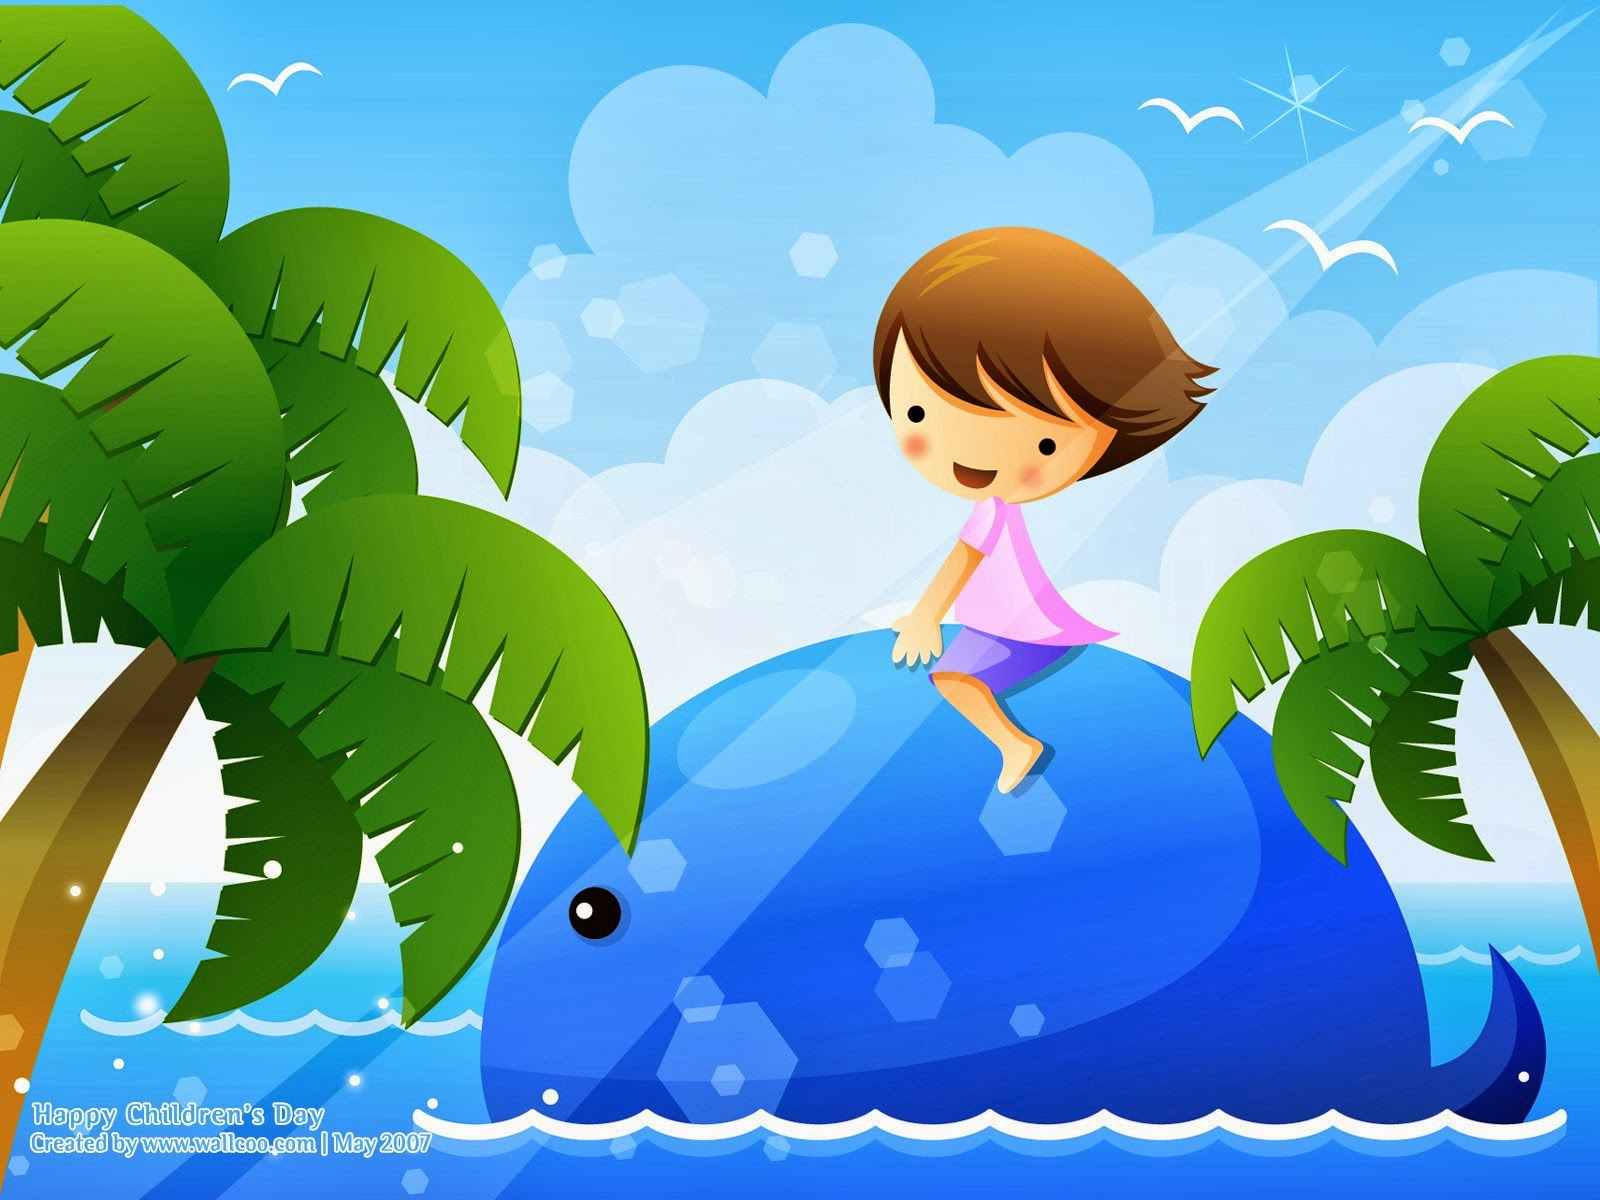 all new wallpaper cute kids wallpaper children game